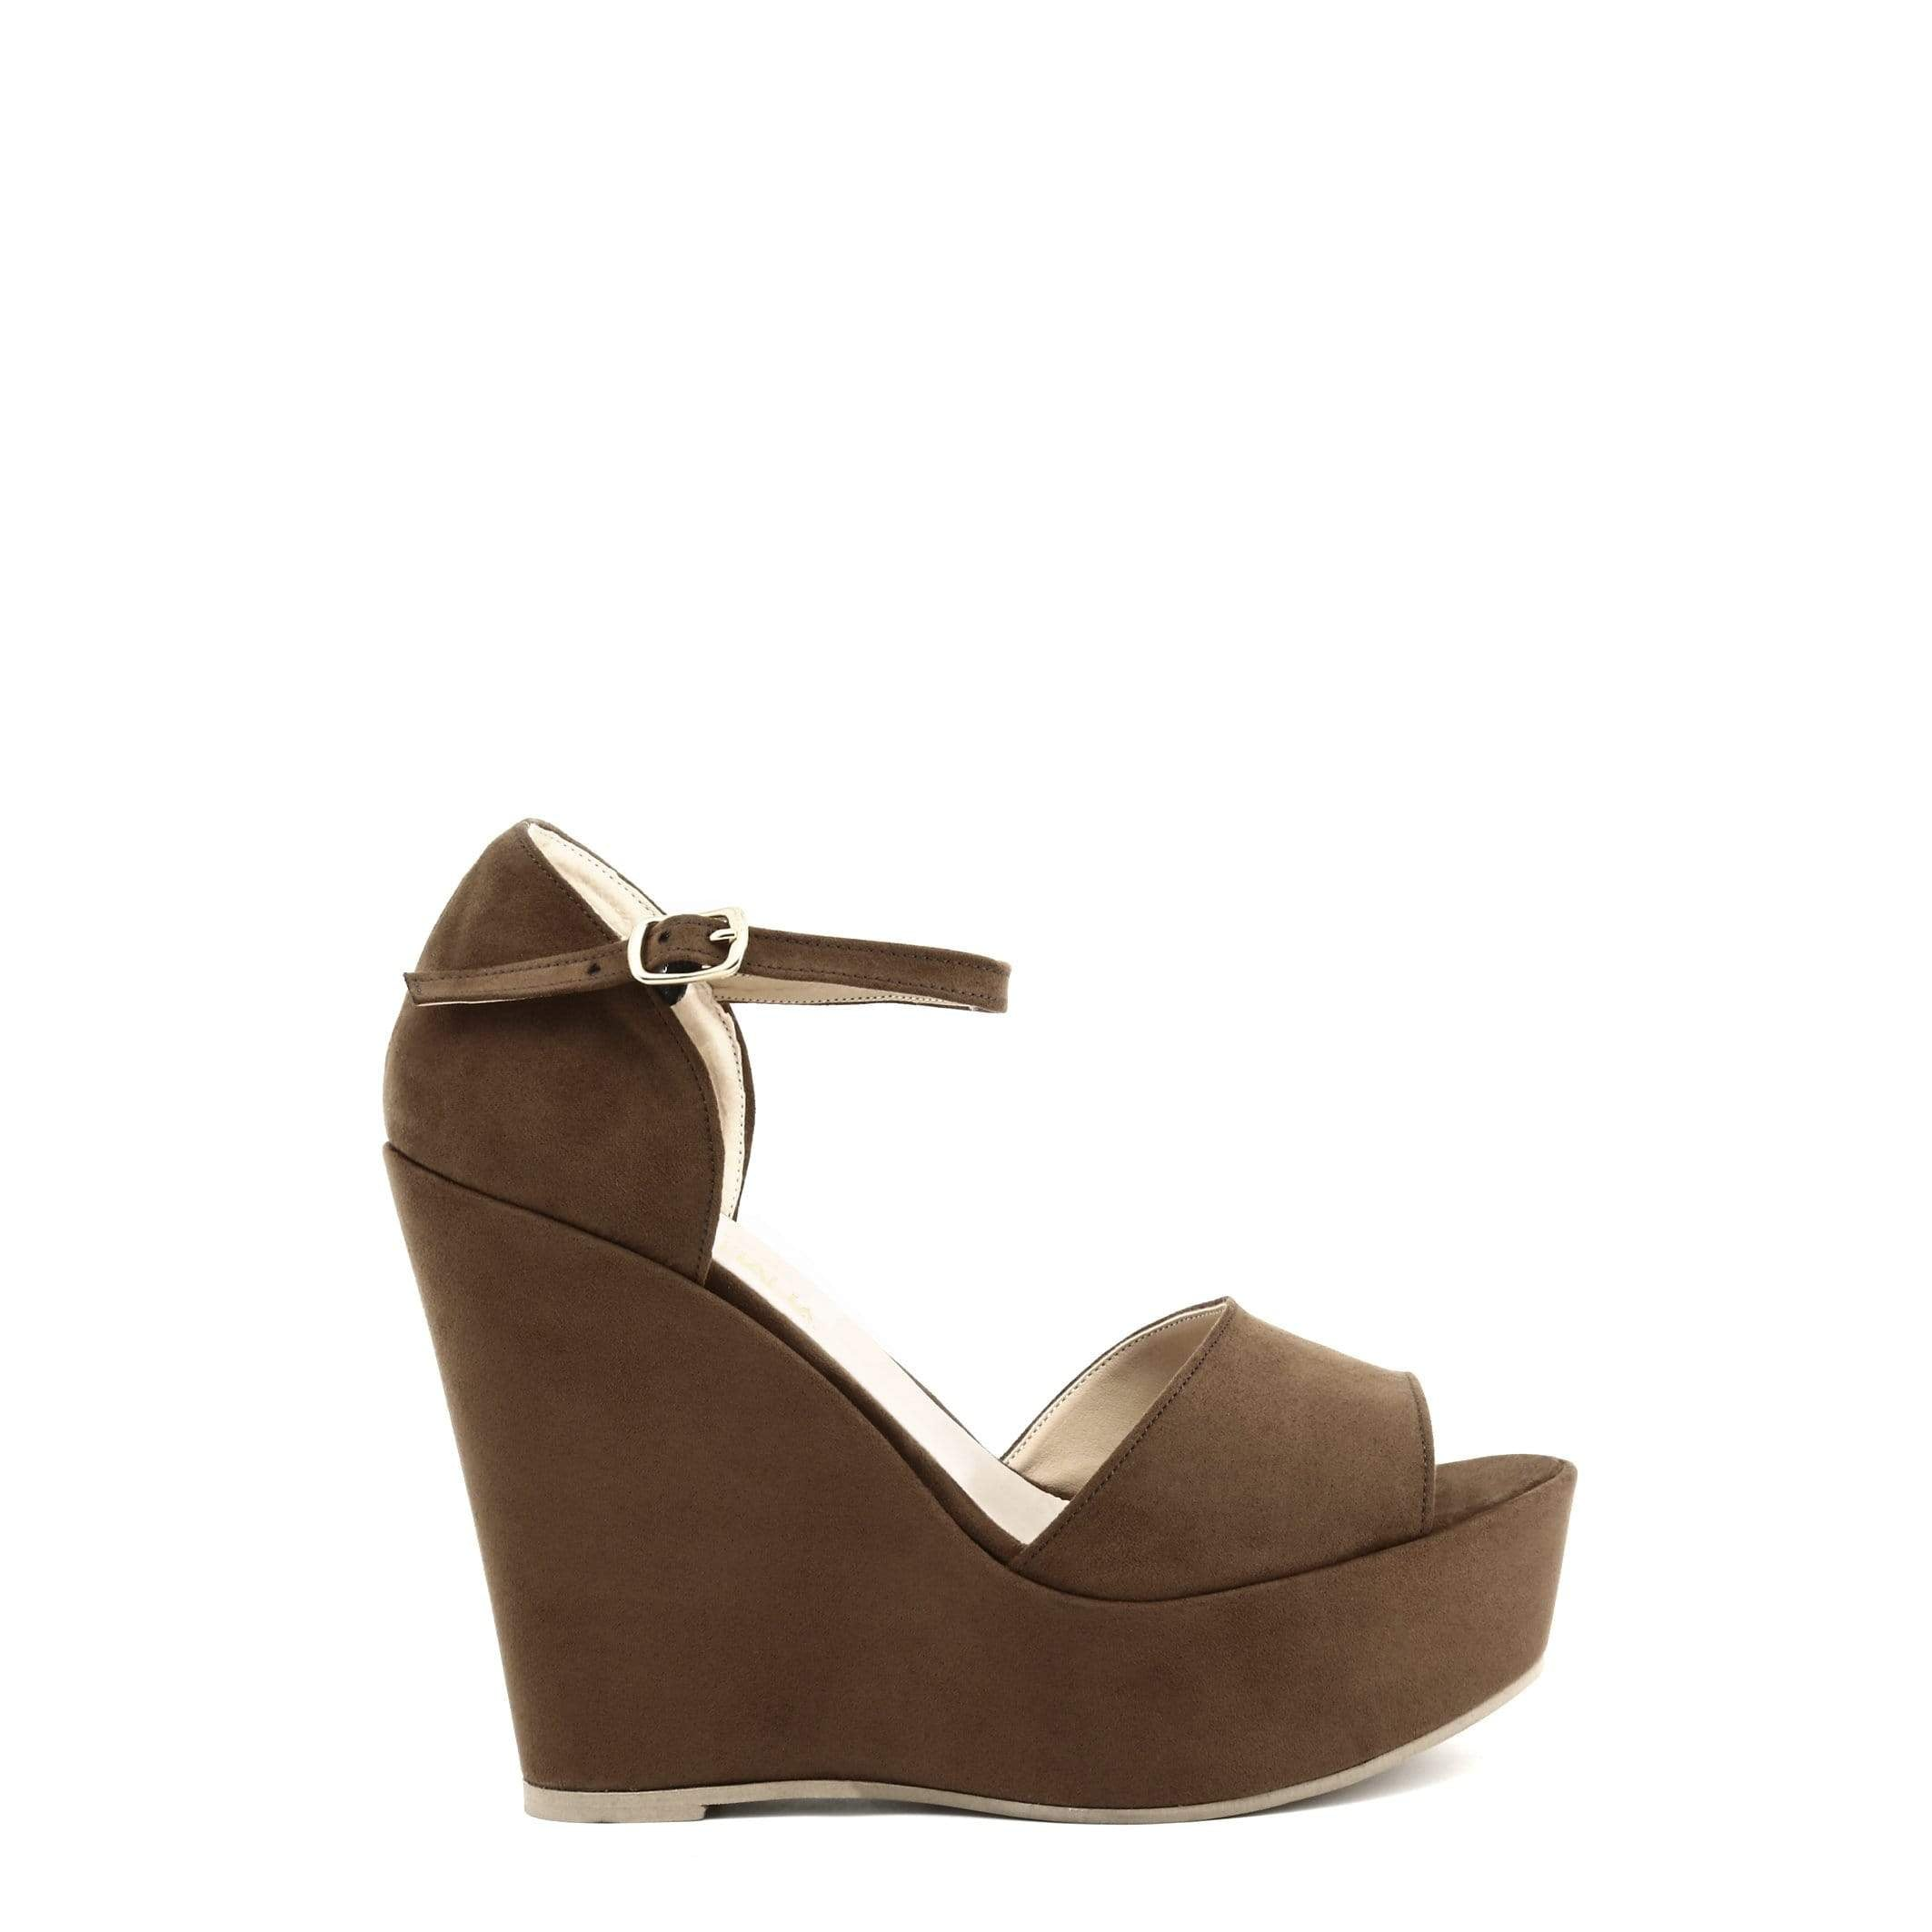 Made in Italia Shoes Wedges brown / 36 Made in Italia - BENIAMINA